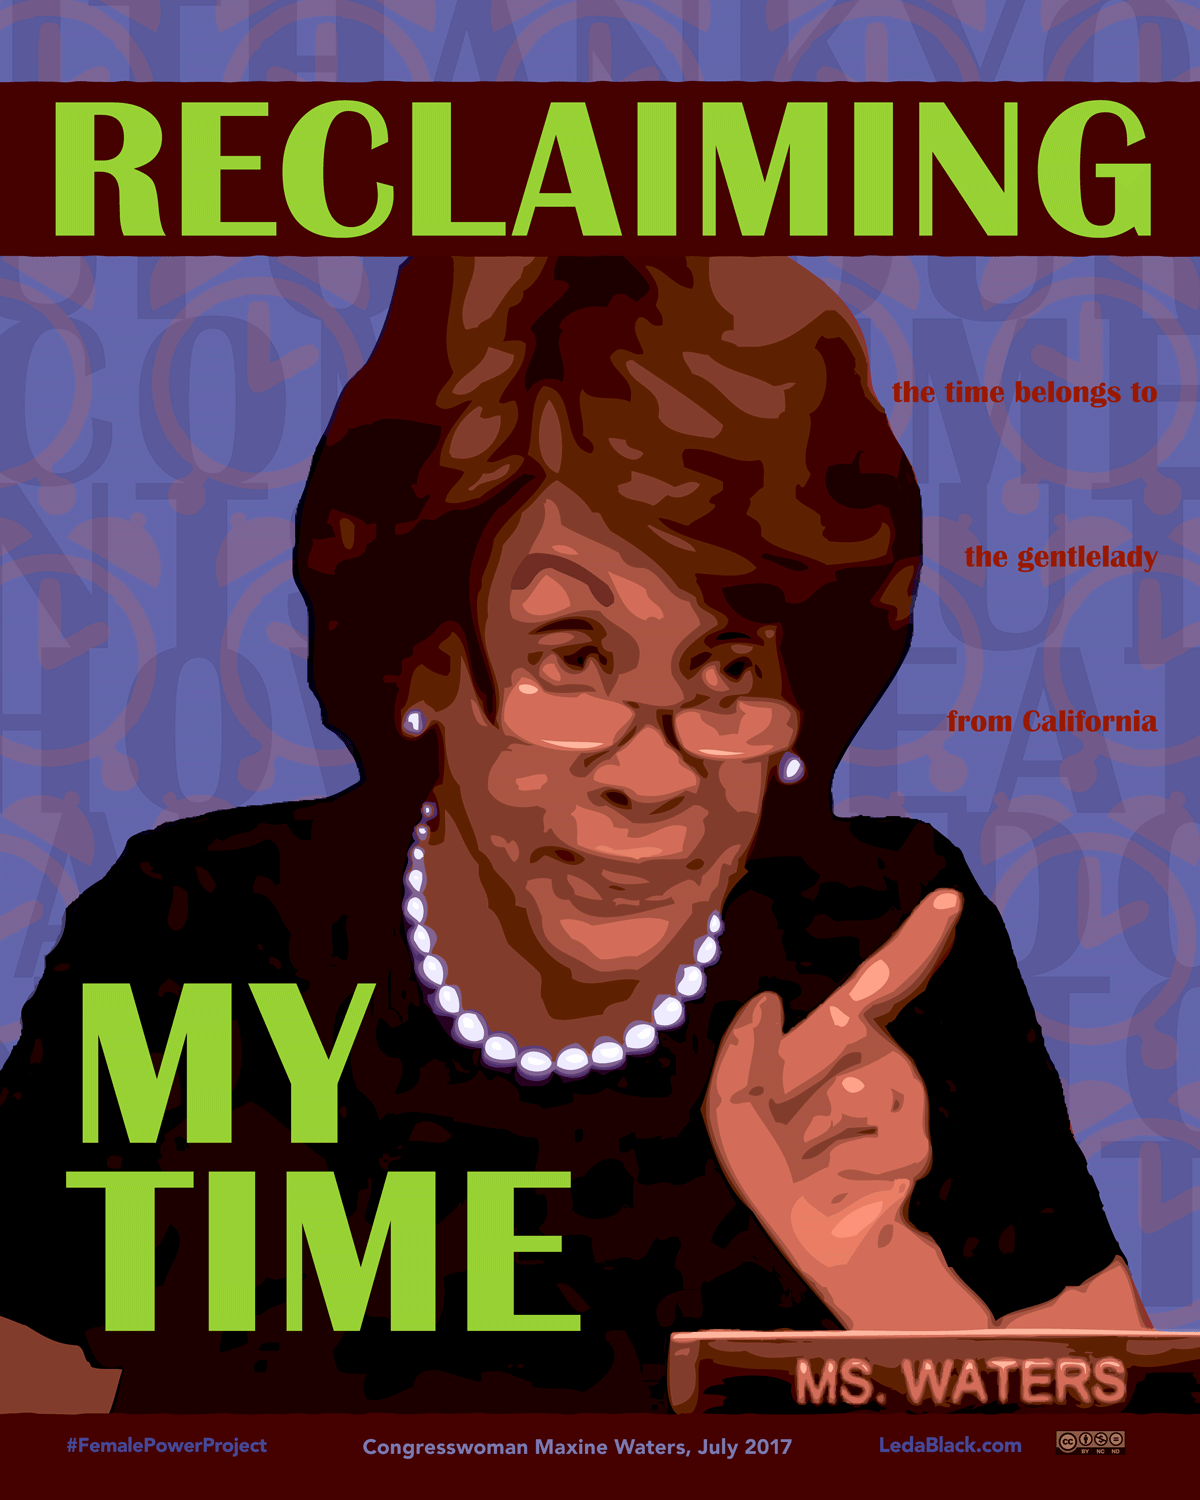 Reclaiming my time reclaiming my time